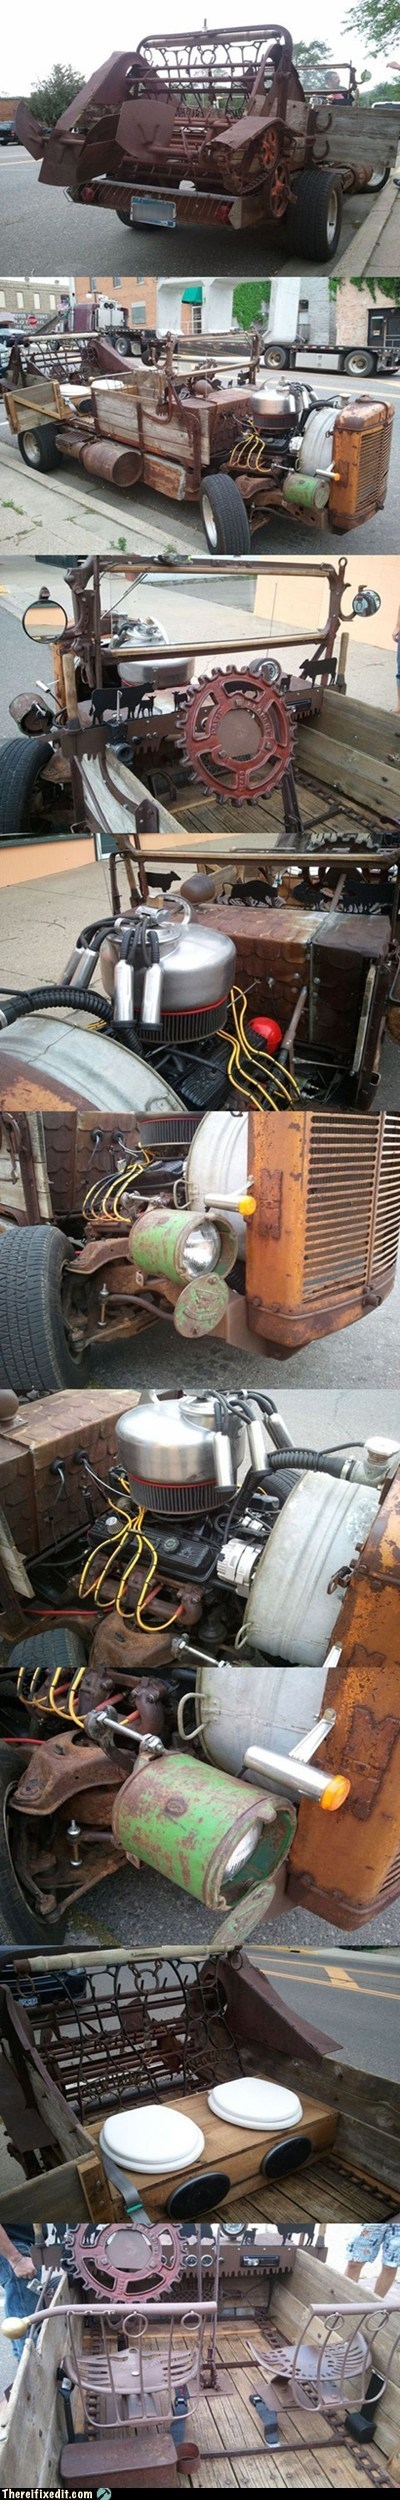 There I Fixed It: TIFI WIN: Minnesota Man Builds His Own Roadster